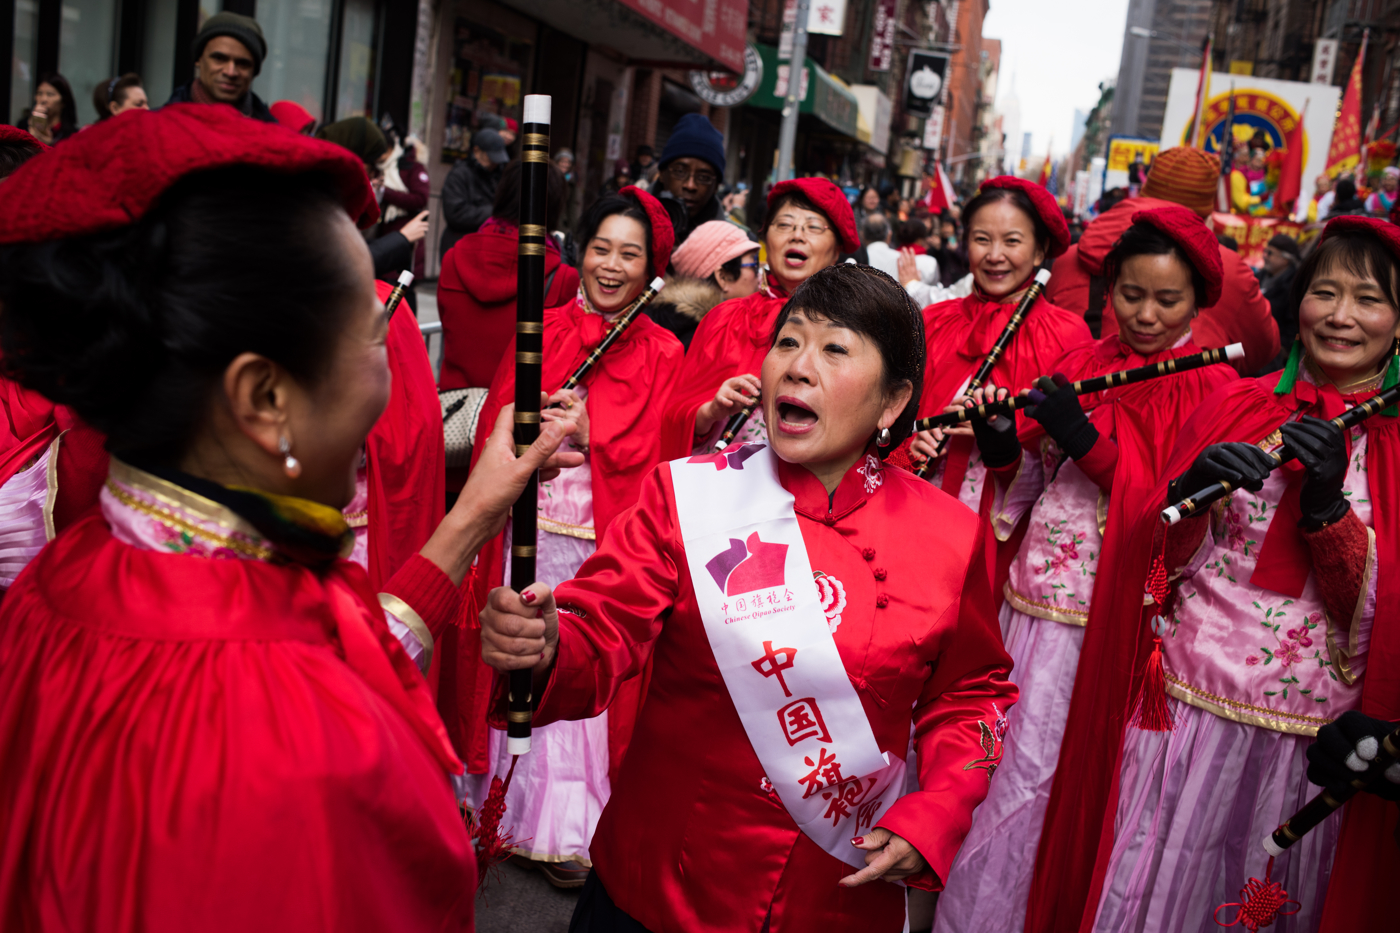 A woman chides one of the participants of her parade group while preparing for the Chinese New Year Parade in the Chinatown neighborhood of New York.